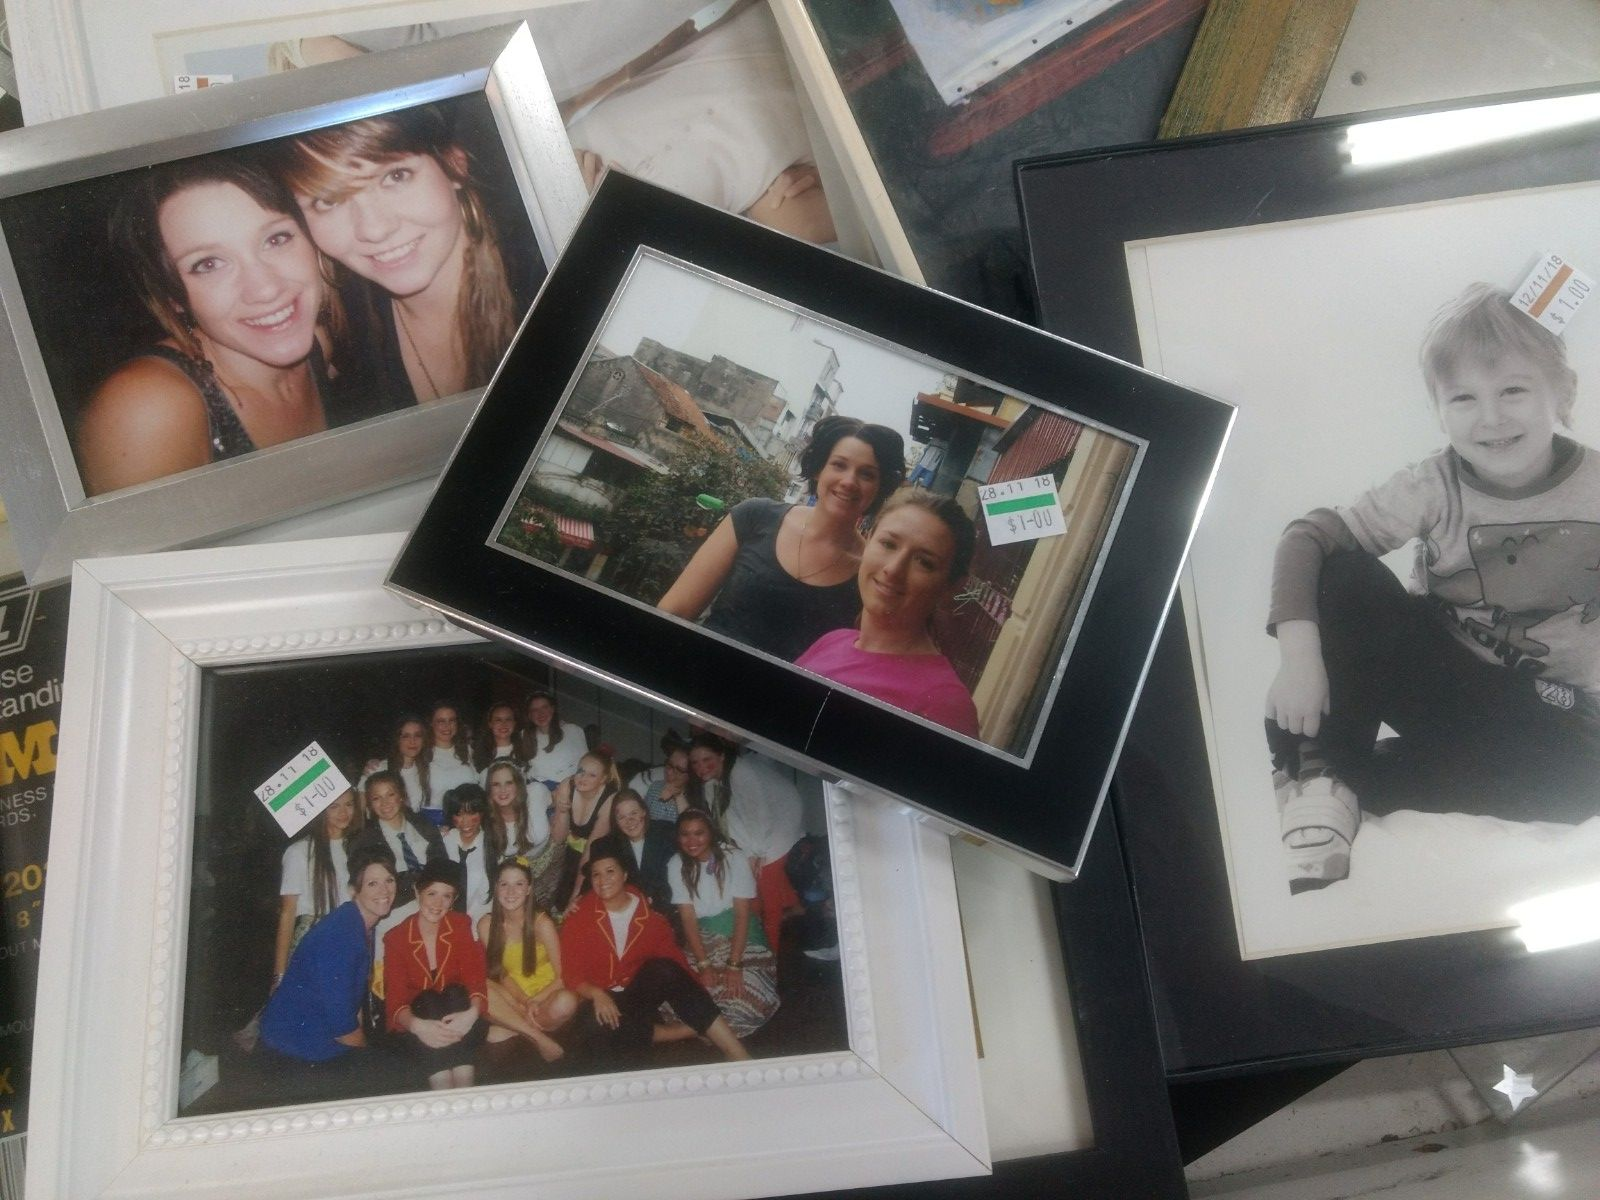 If people are too busy to even salvage their own photos out of photo frames,what are the chances of them moving items on responsibly? . I mean that's your life you're sending to the opp shop for all to see. Know anyone? Image Source - My own.